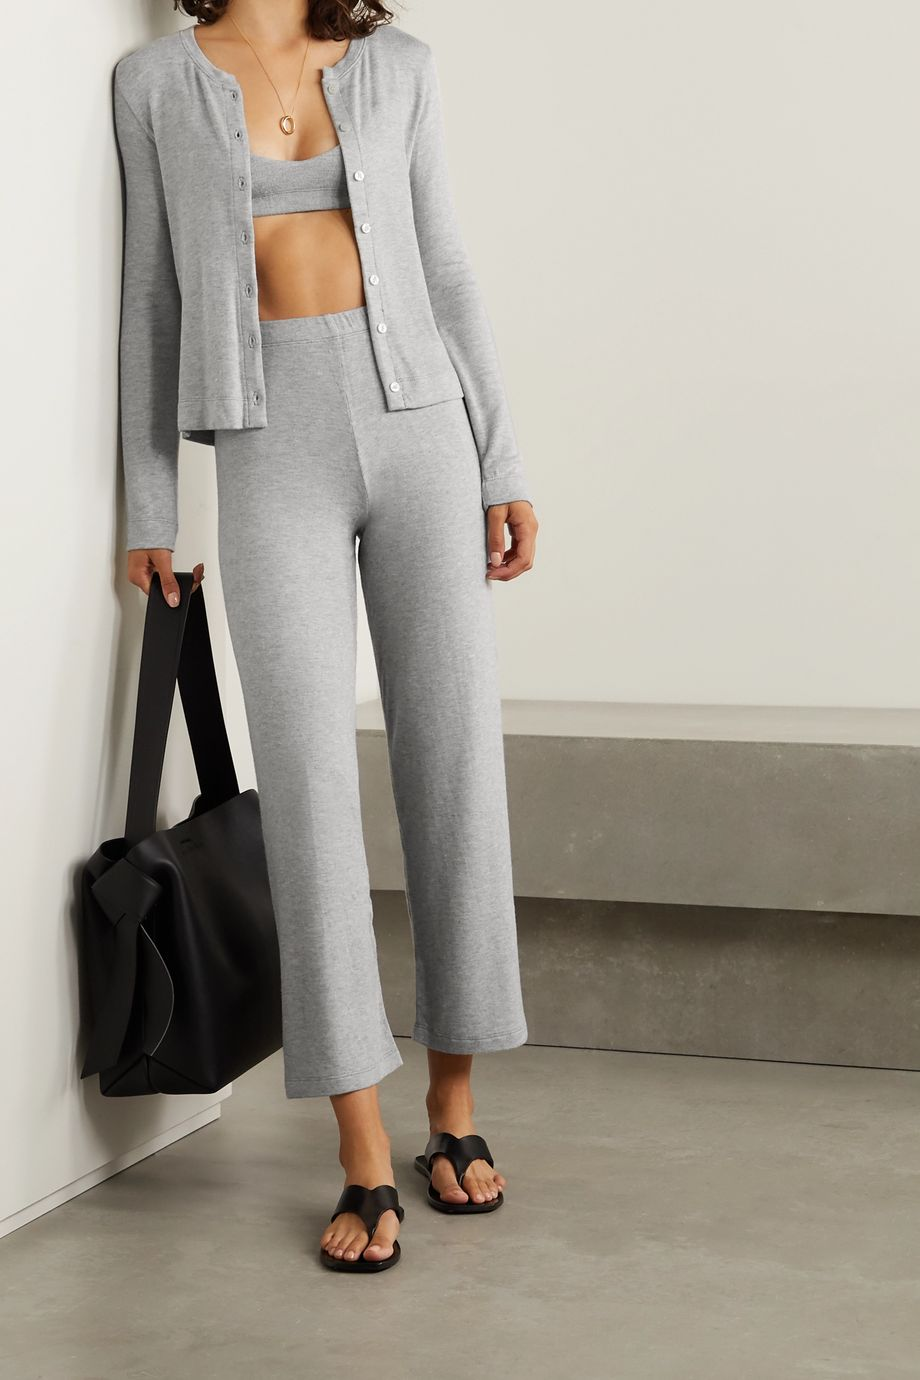 LESET Lori brushed stretch-jersey cardigan and bralette set